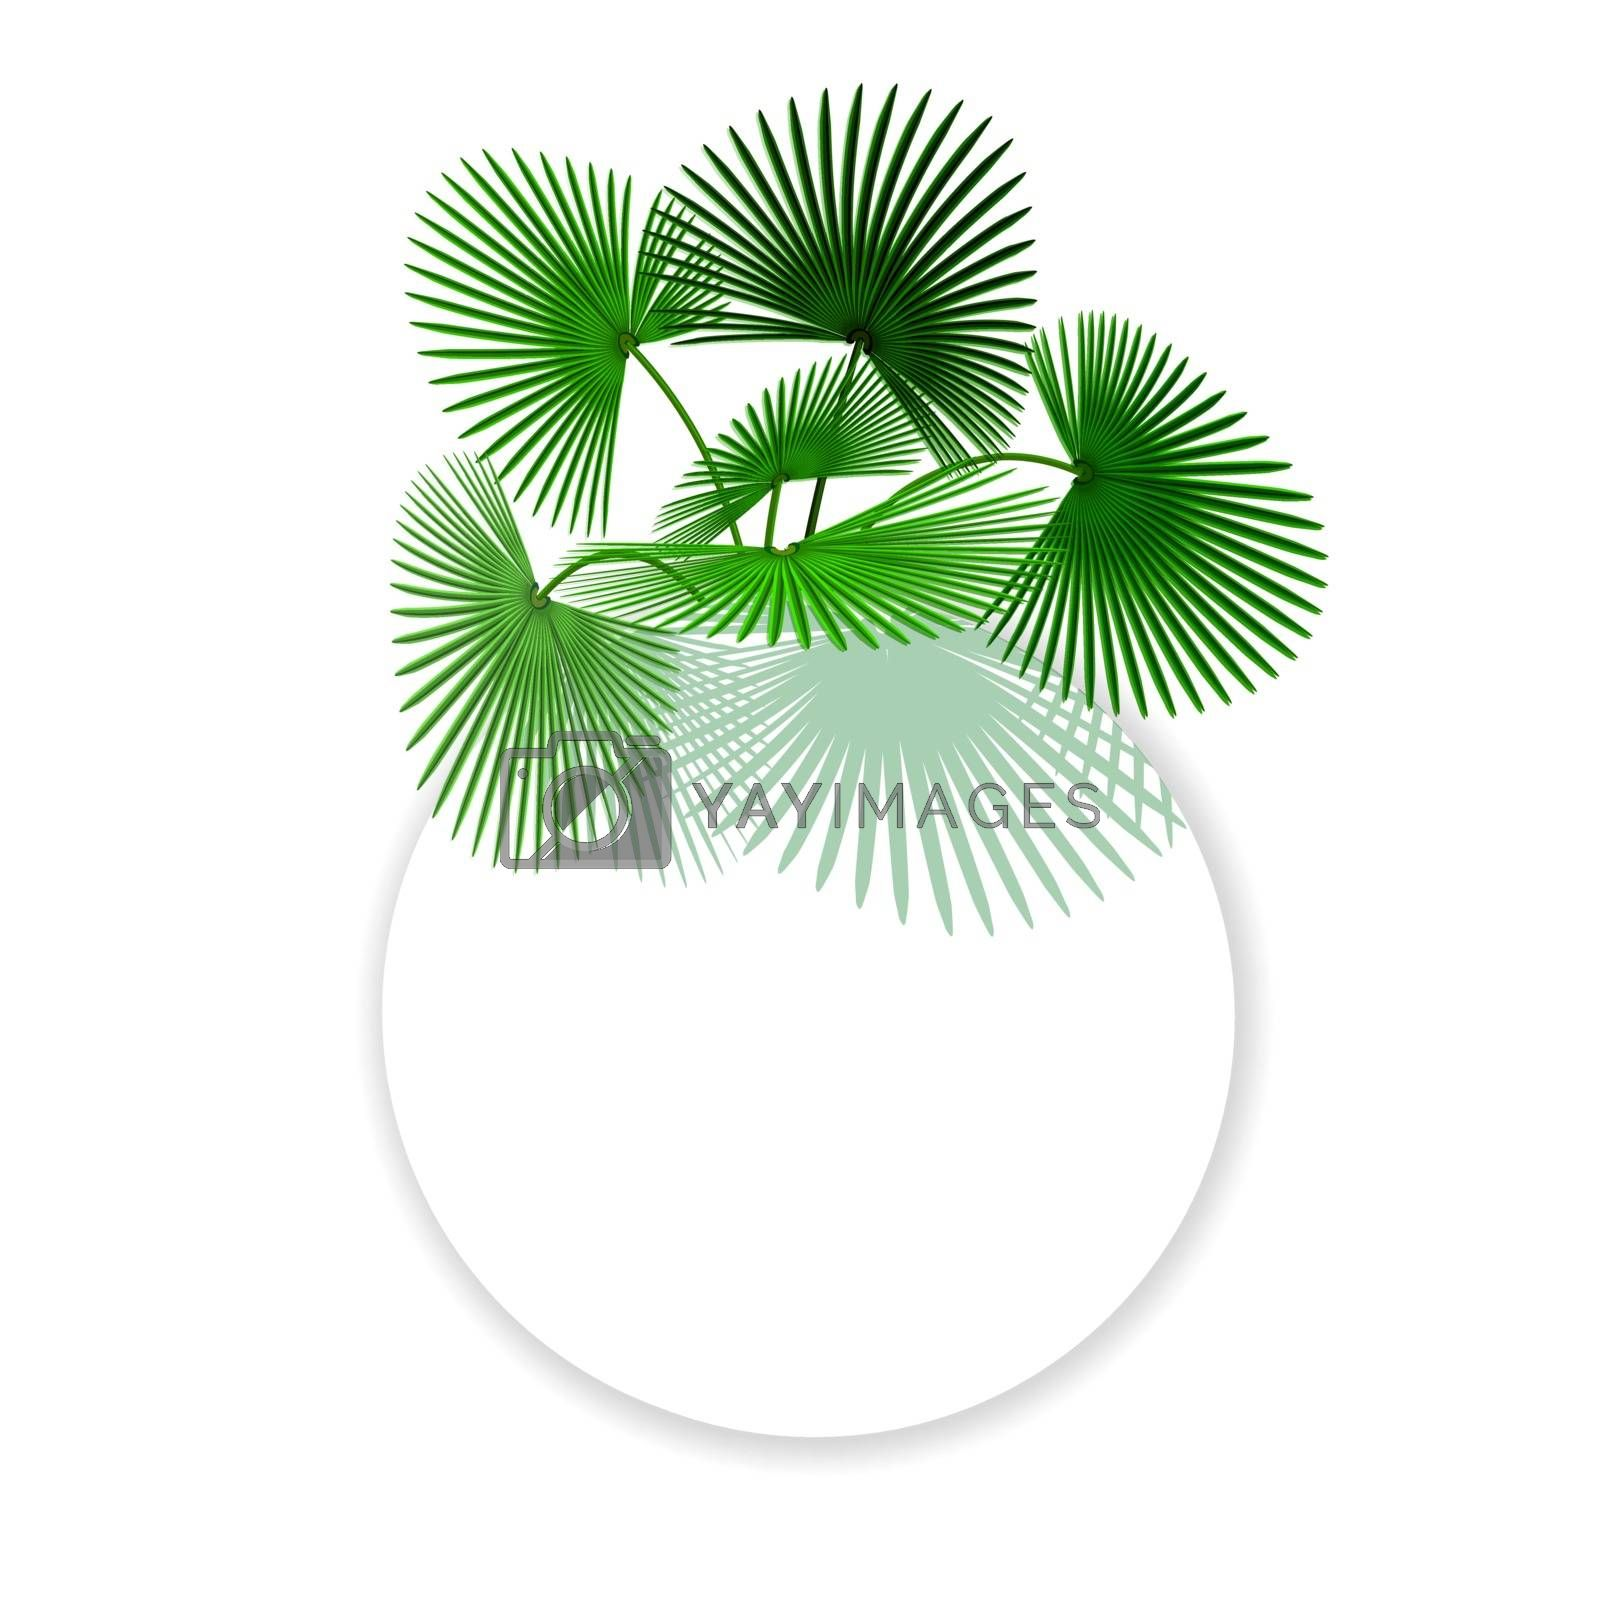 Green tropical leaves Palm In a circle place for Ads, Advertising. Vector illustration